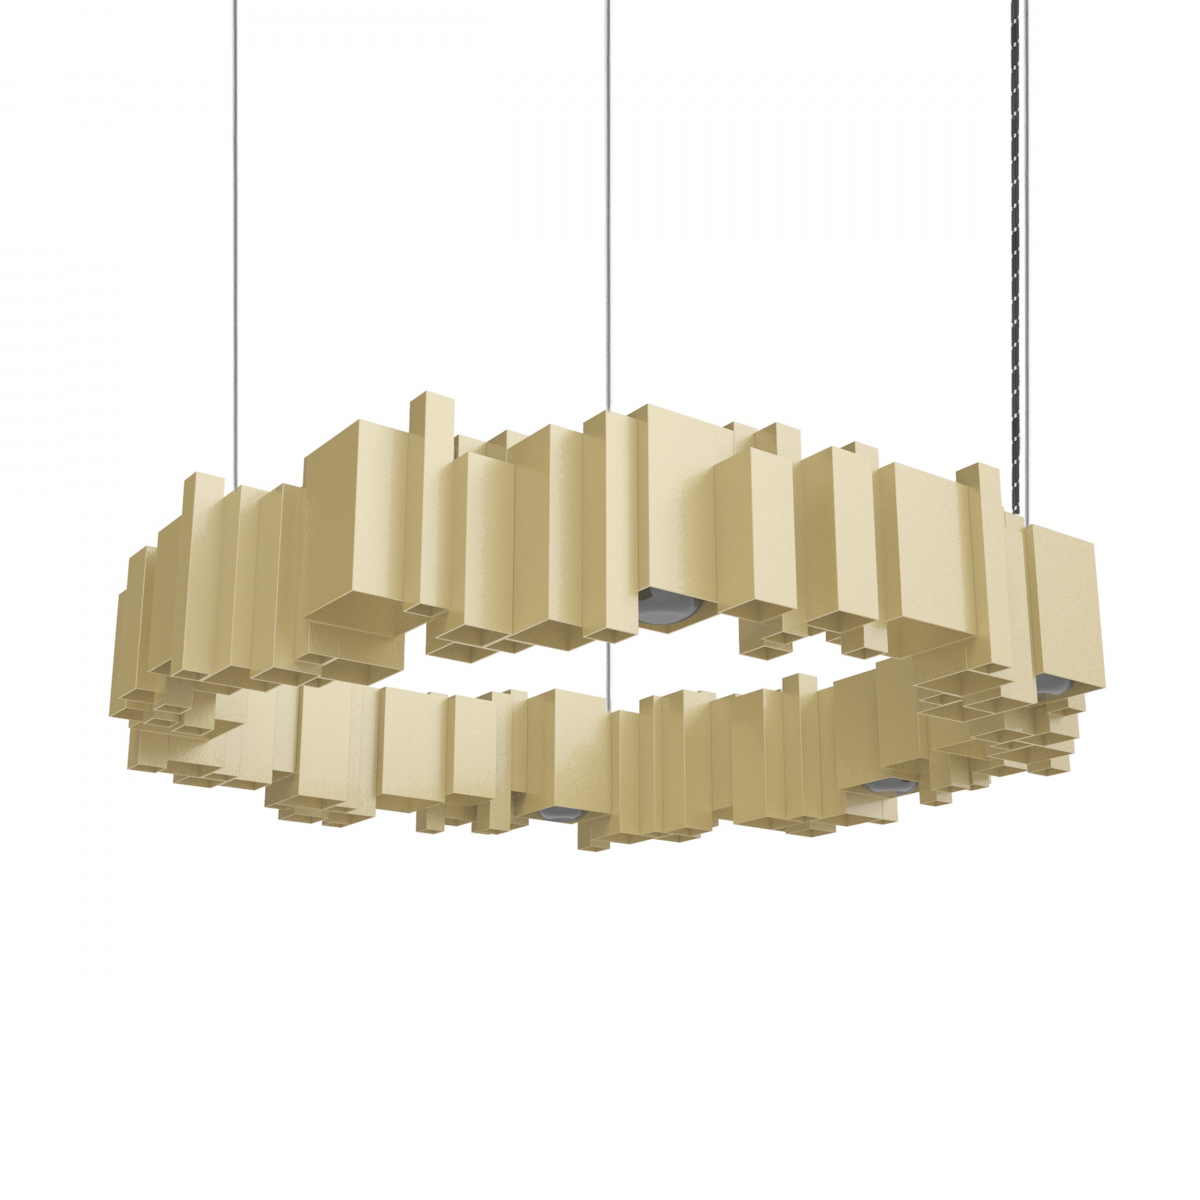 JSPR Cityscapes Urban OFF Champagne Hanglamp Dutchdesign